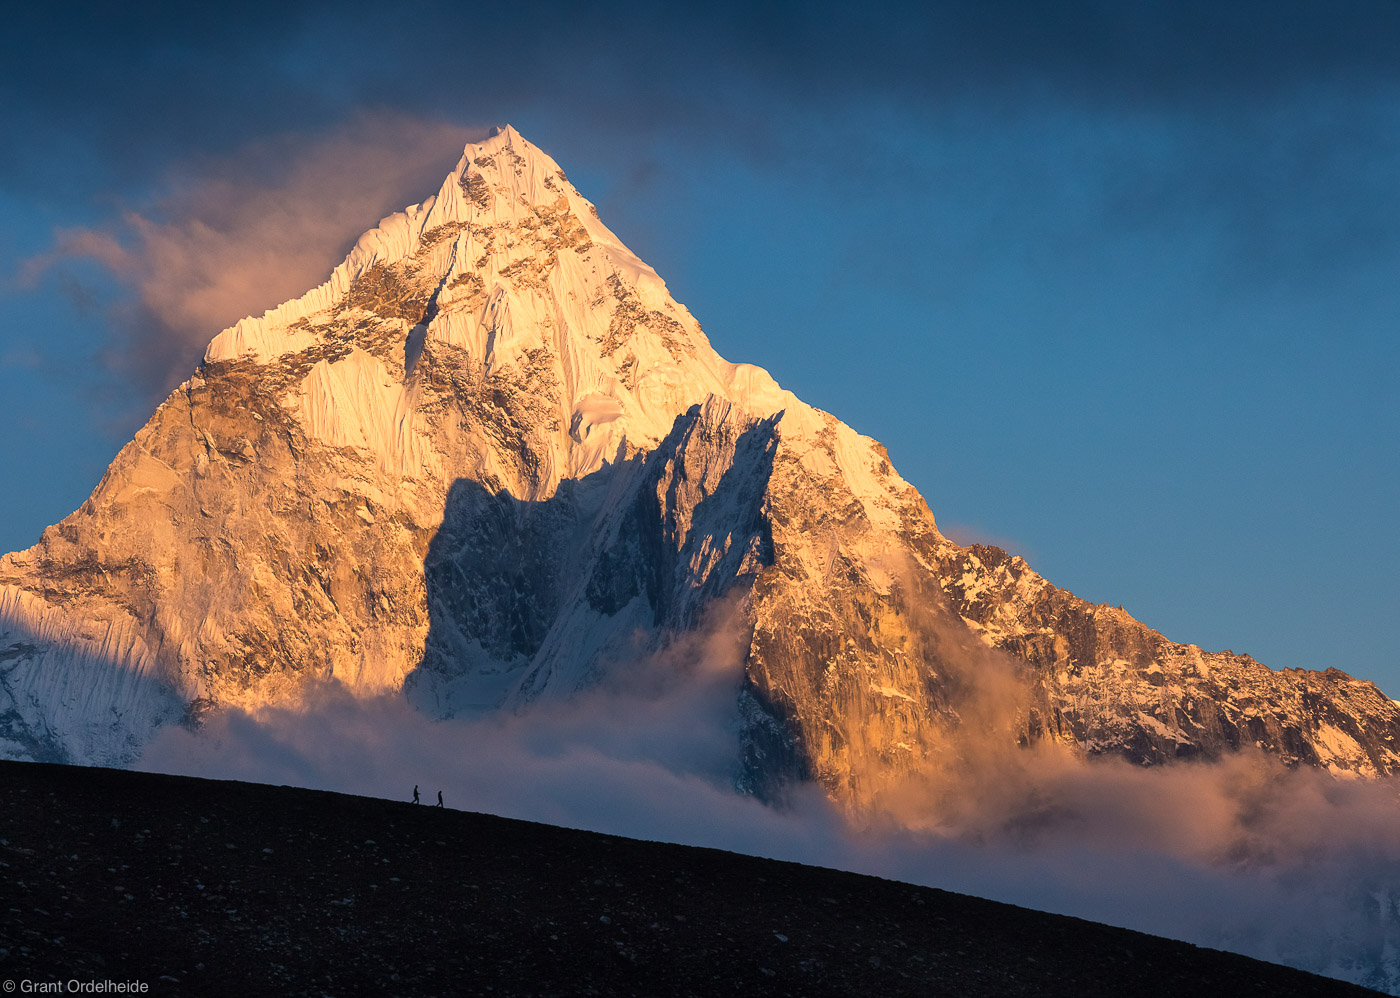 ama dablam, sagarmatha, national, park, nepal, figures, massive, everest, region, himalaya, photo